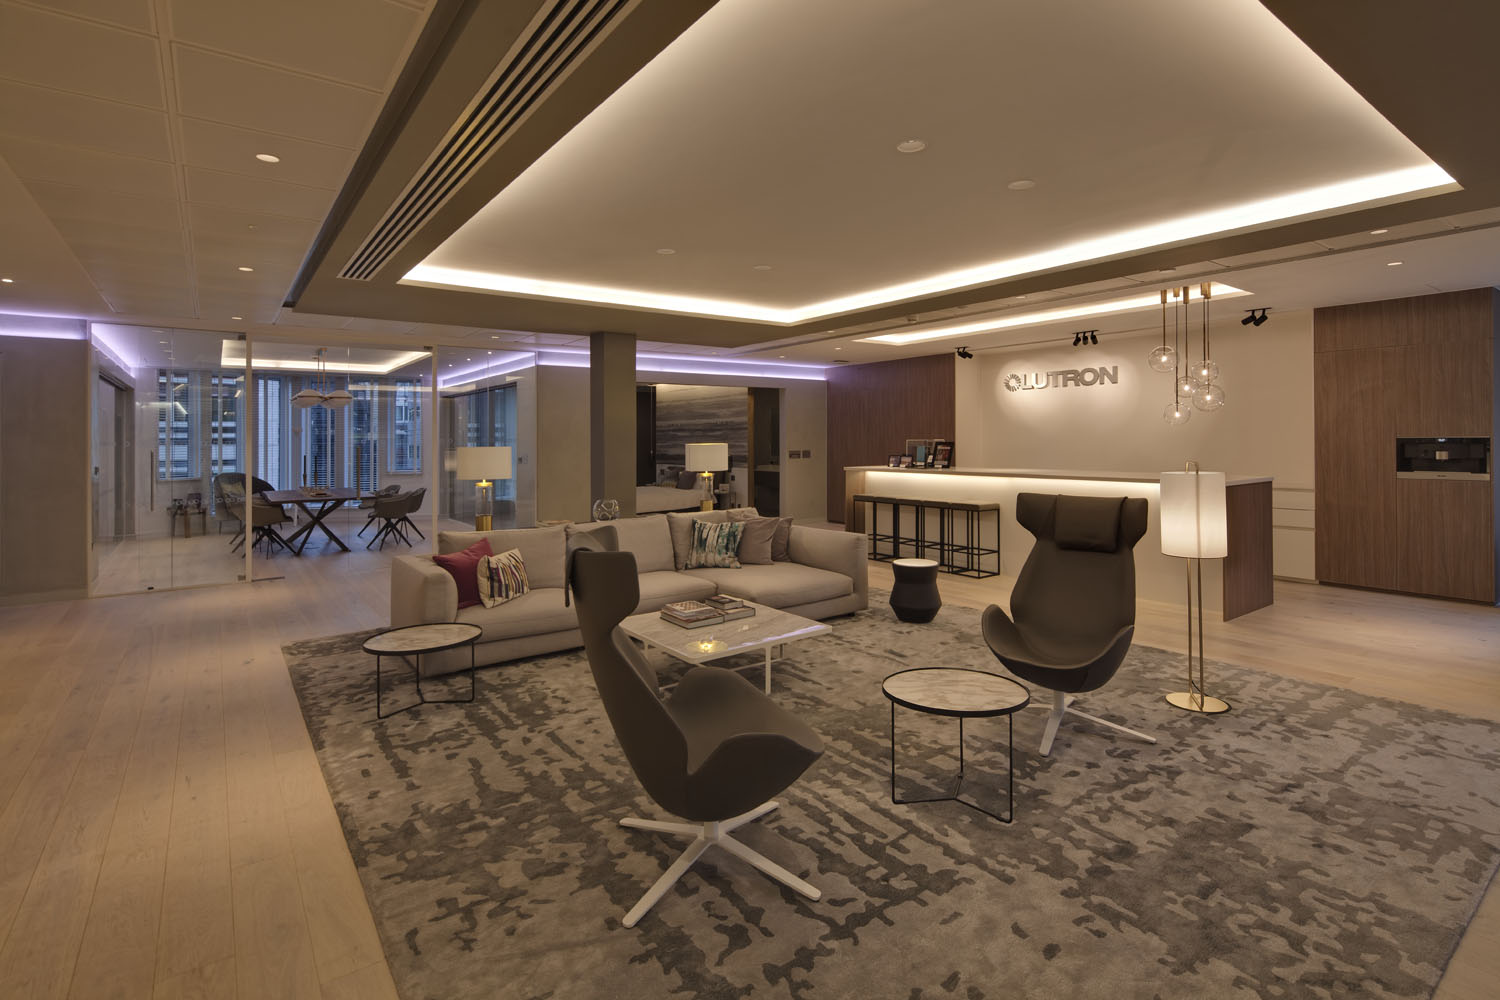 Lutron European Experience Centre in The City of London